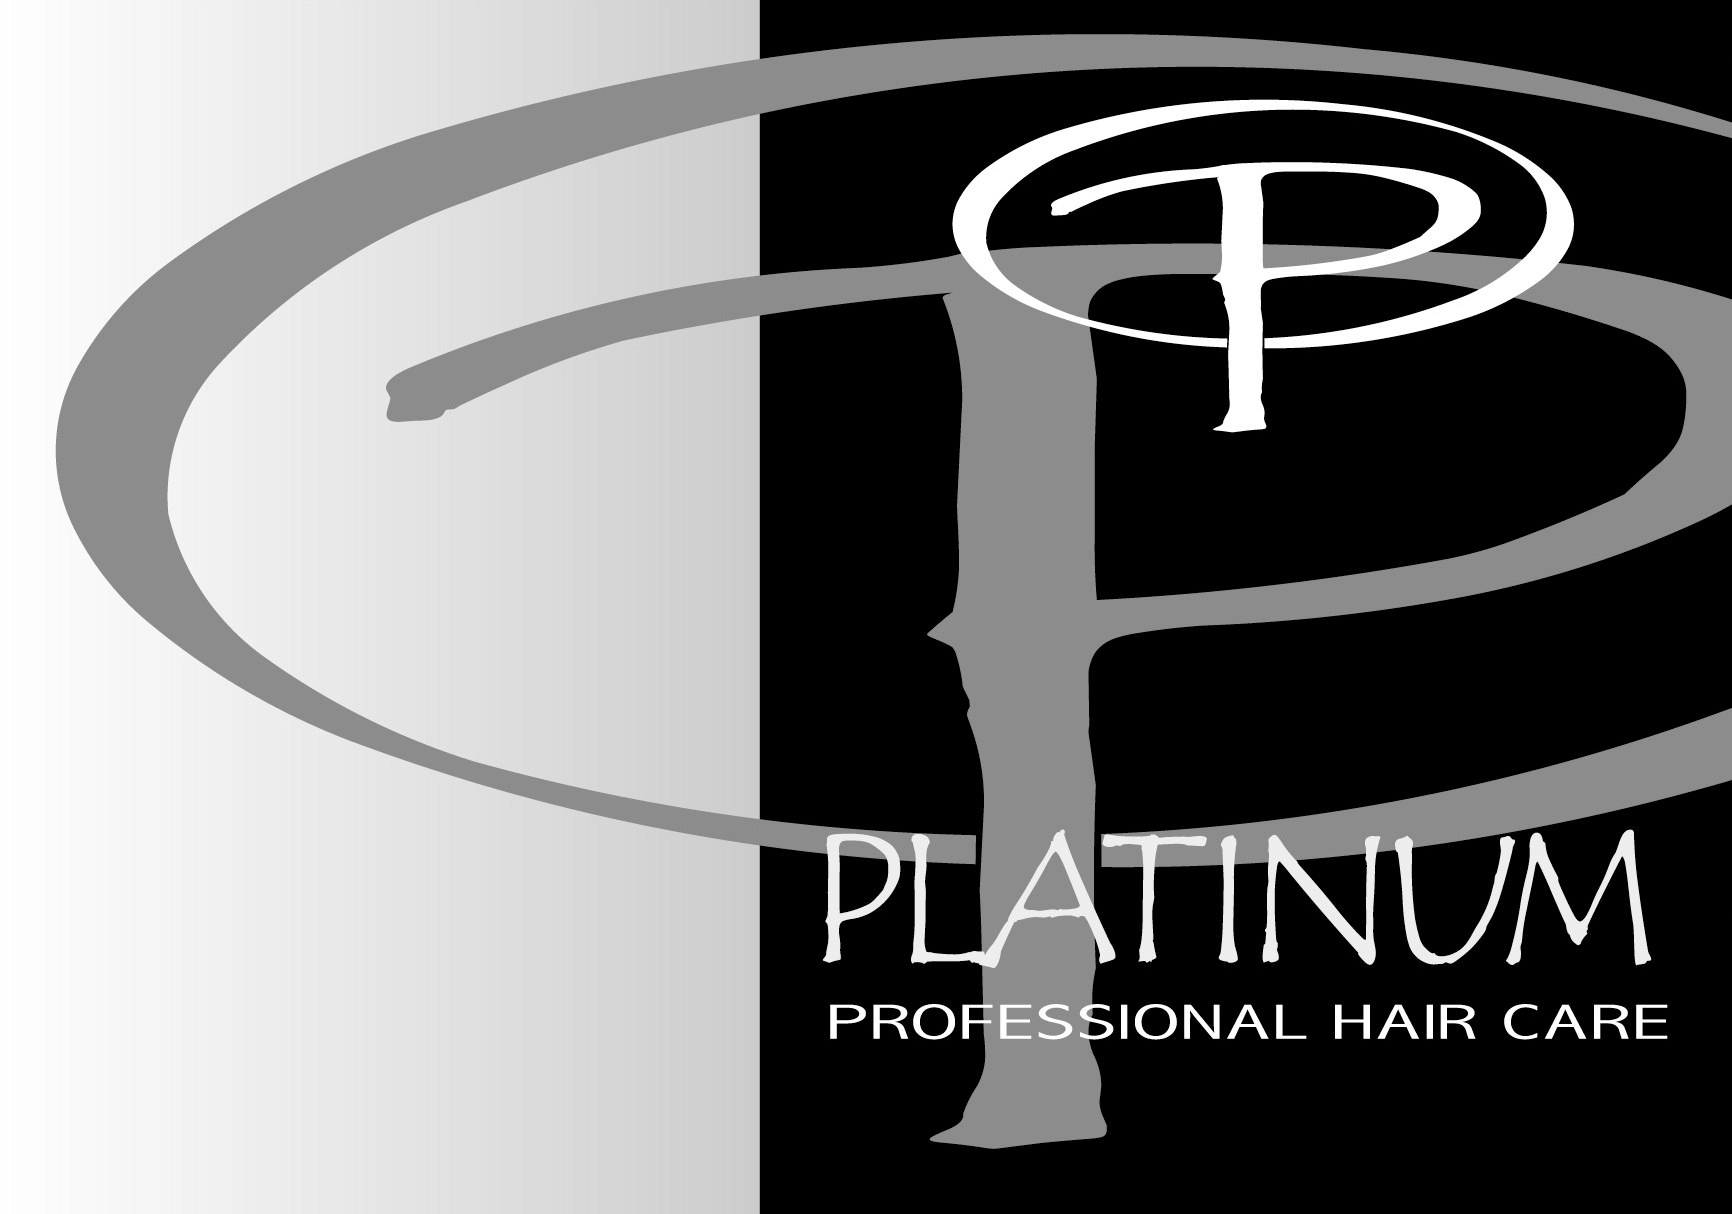 Platinum Professional Hair Care